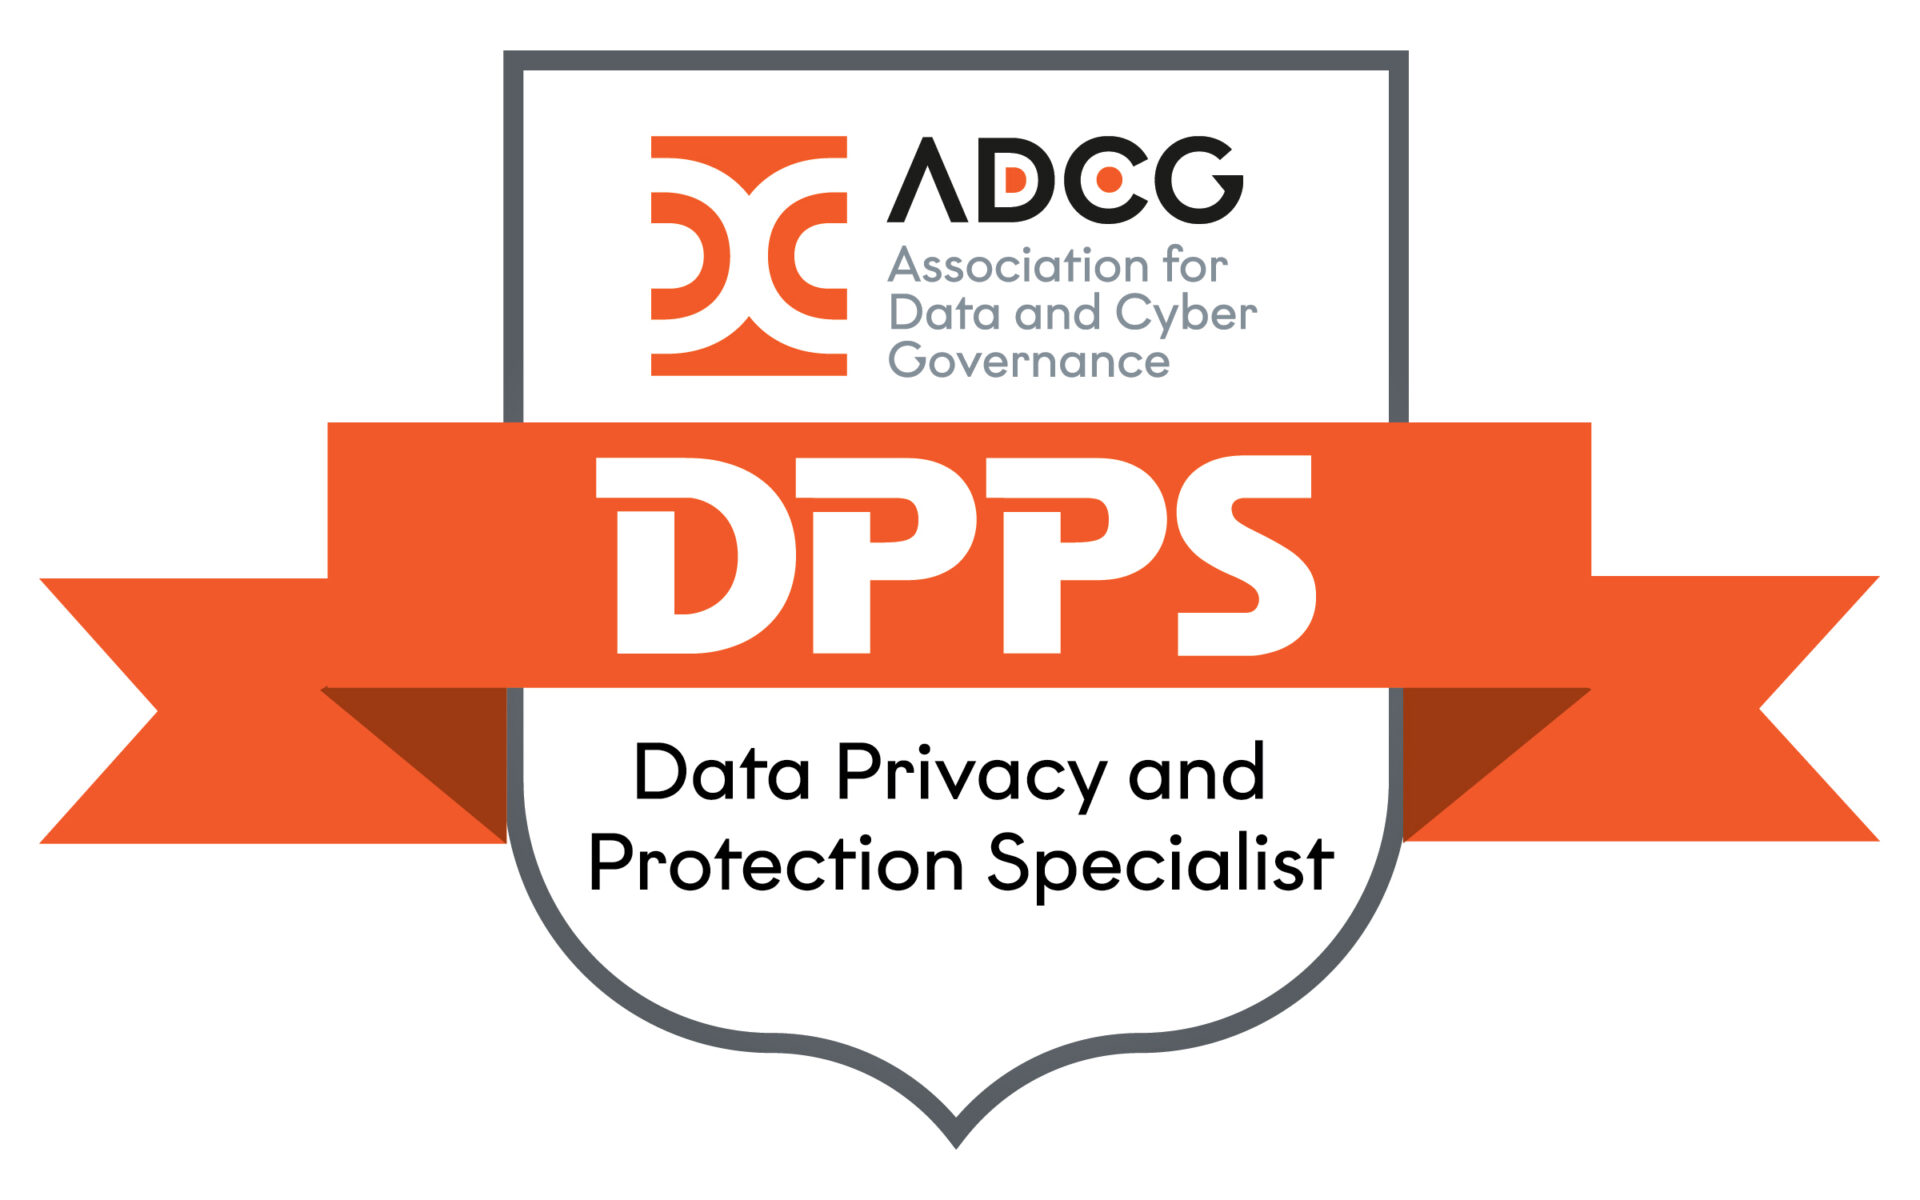 Data Privacy And Protection Specialist